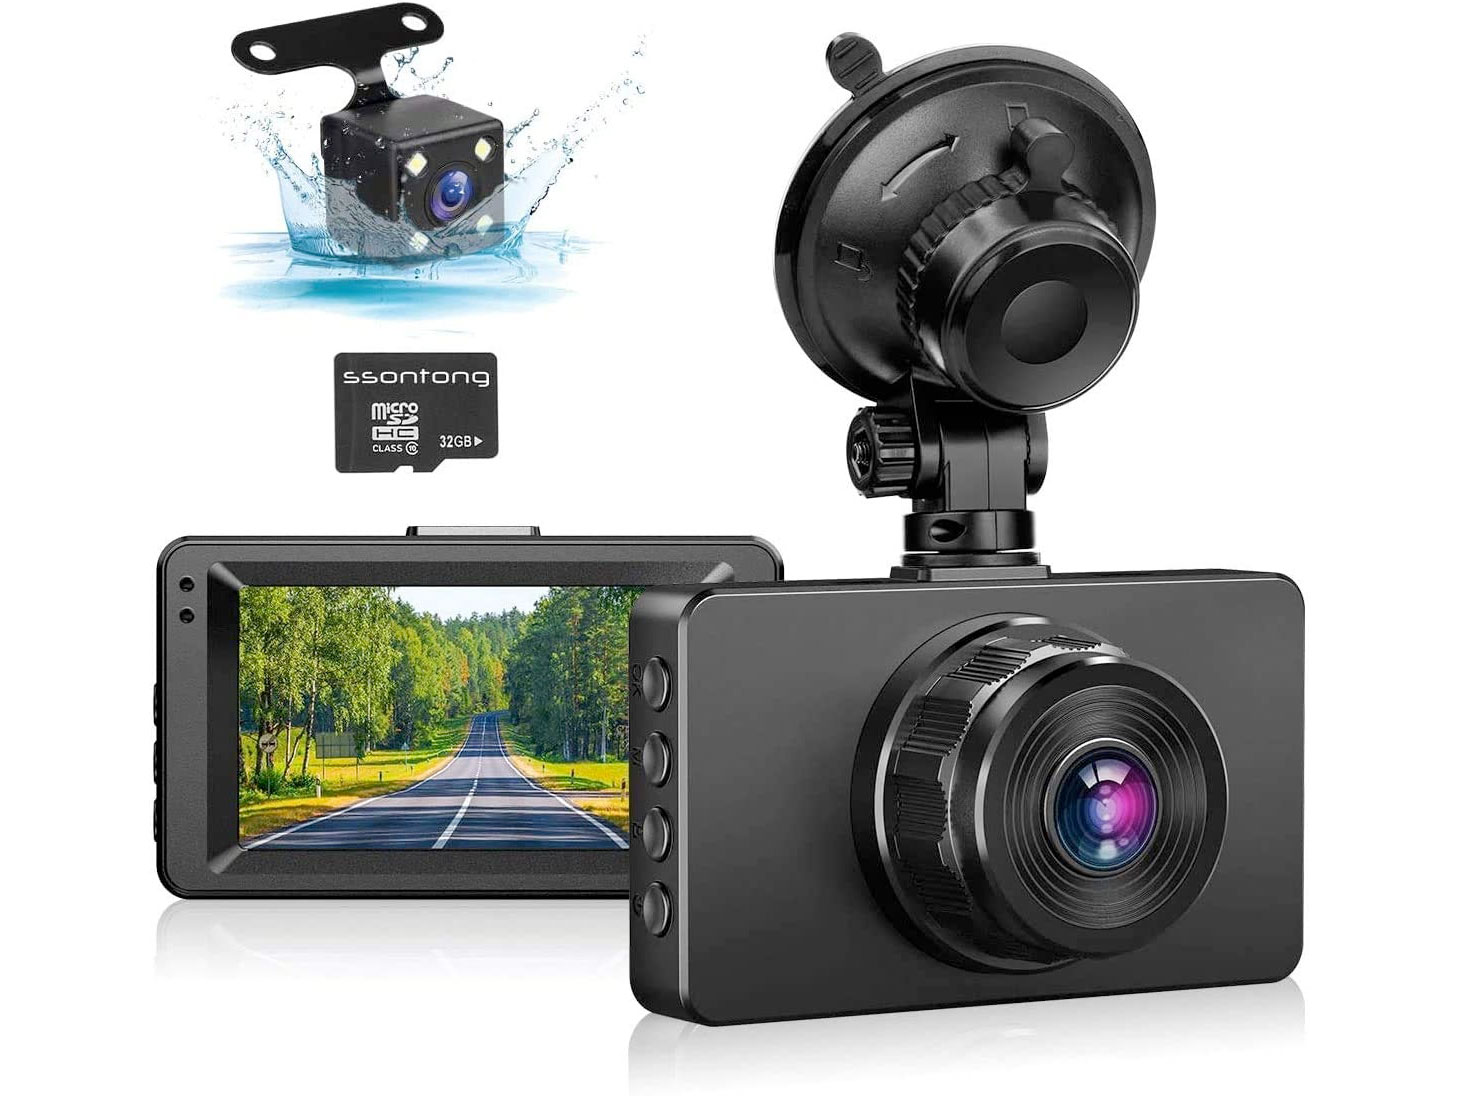 Amazon:Dual Dash Cam Front and Rear前後雙鏡行車記錄儀 (with SD Card)只賣$41.49